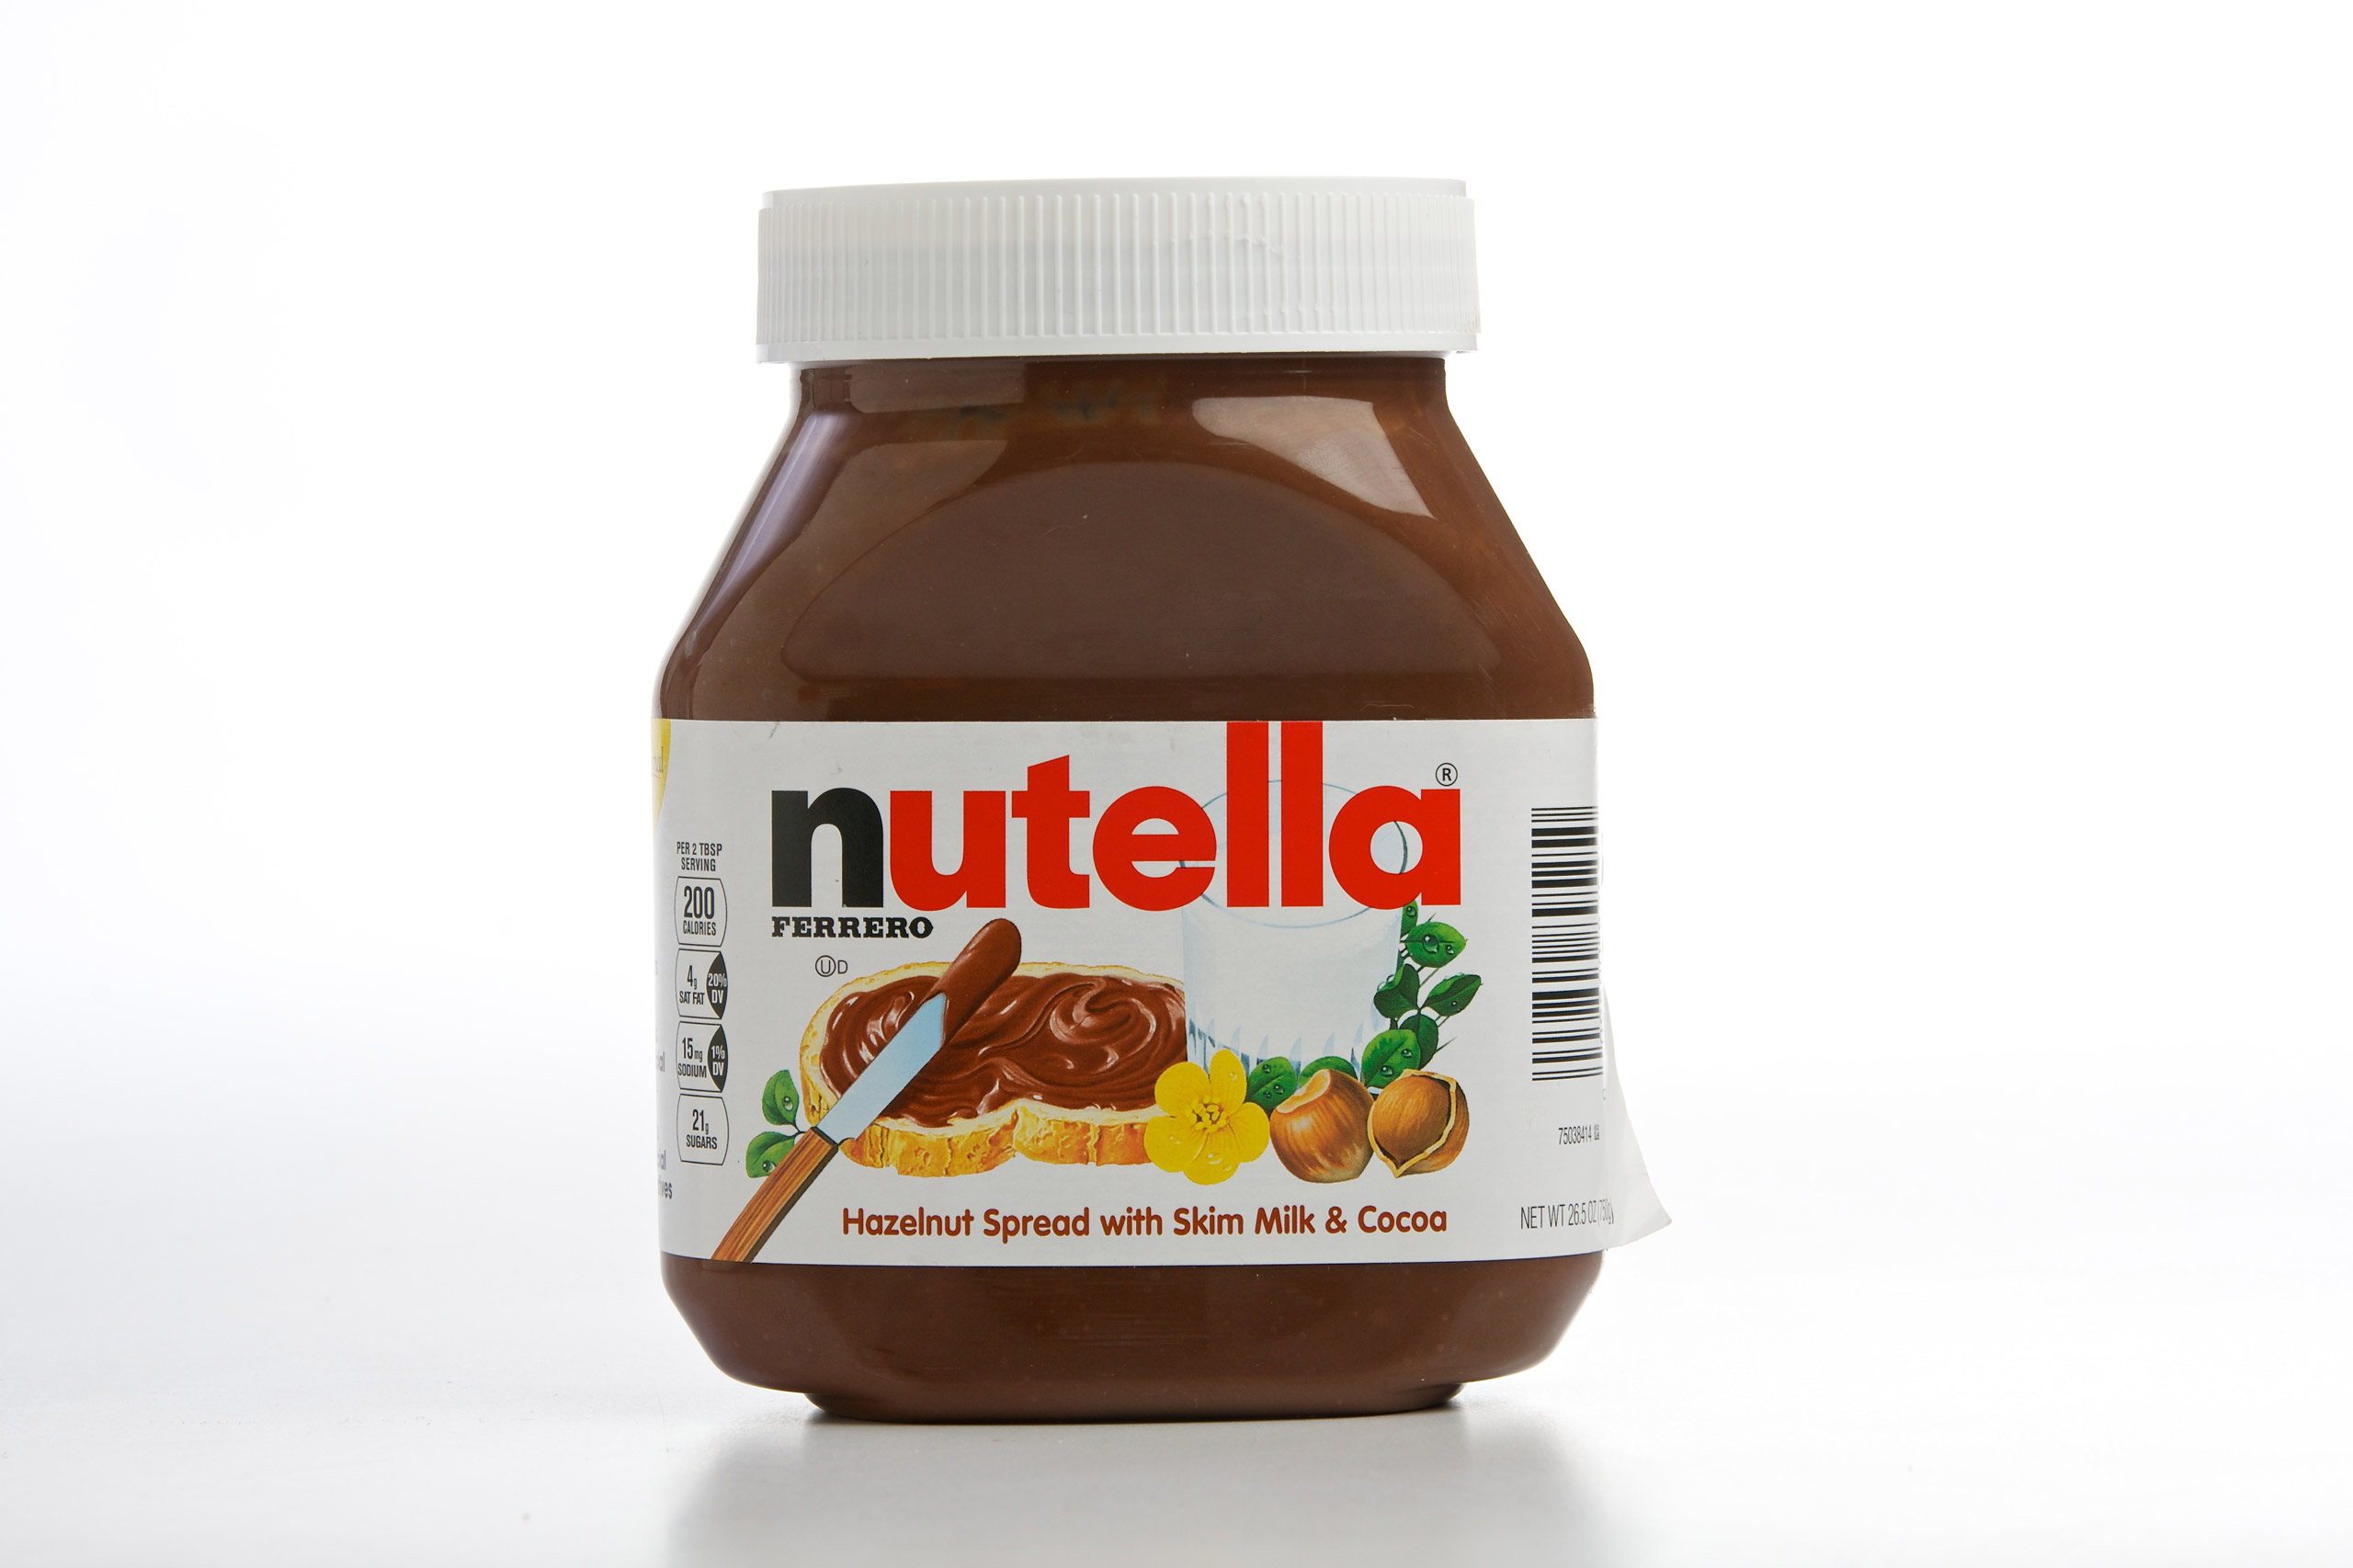 Nutella photographed in Washigton on May 28, 2014.